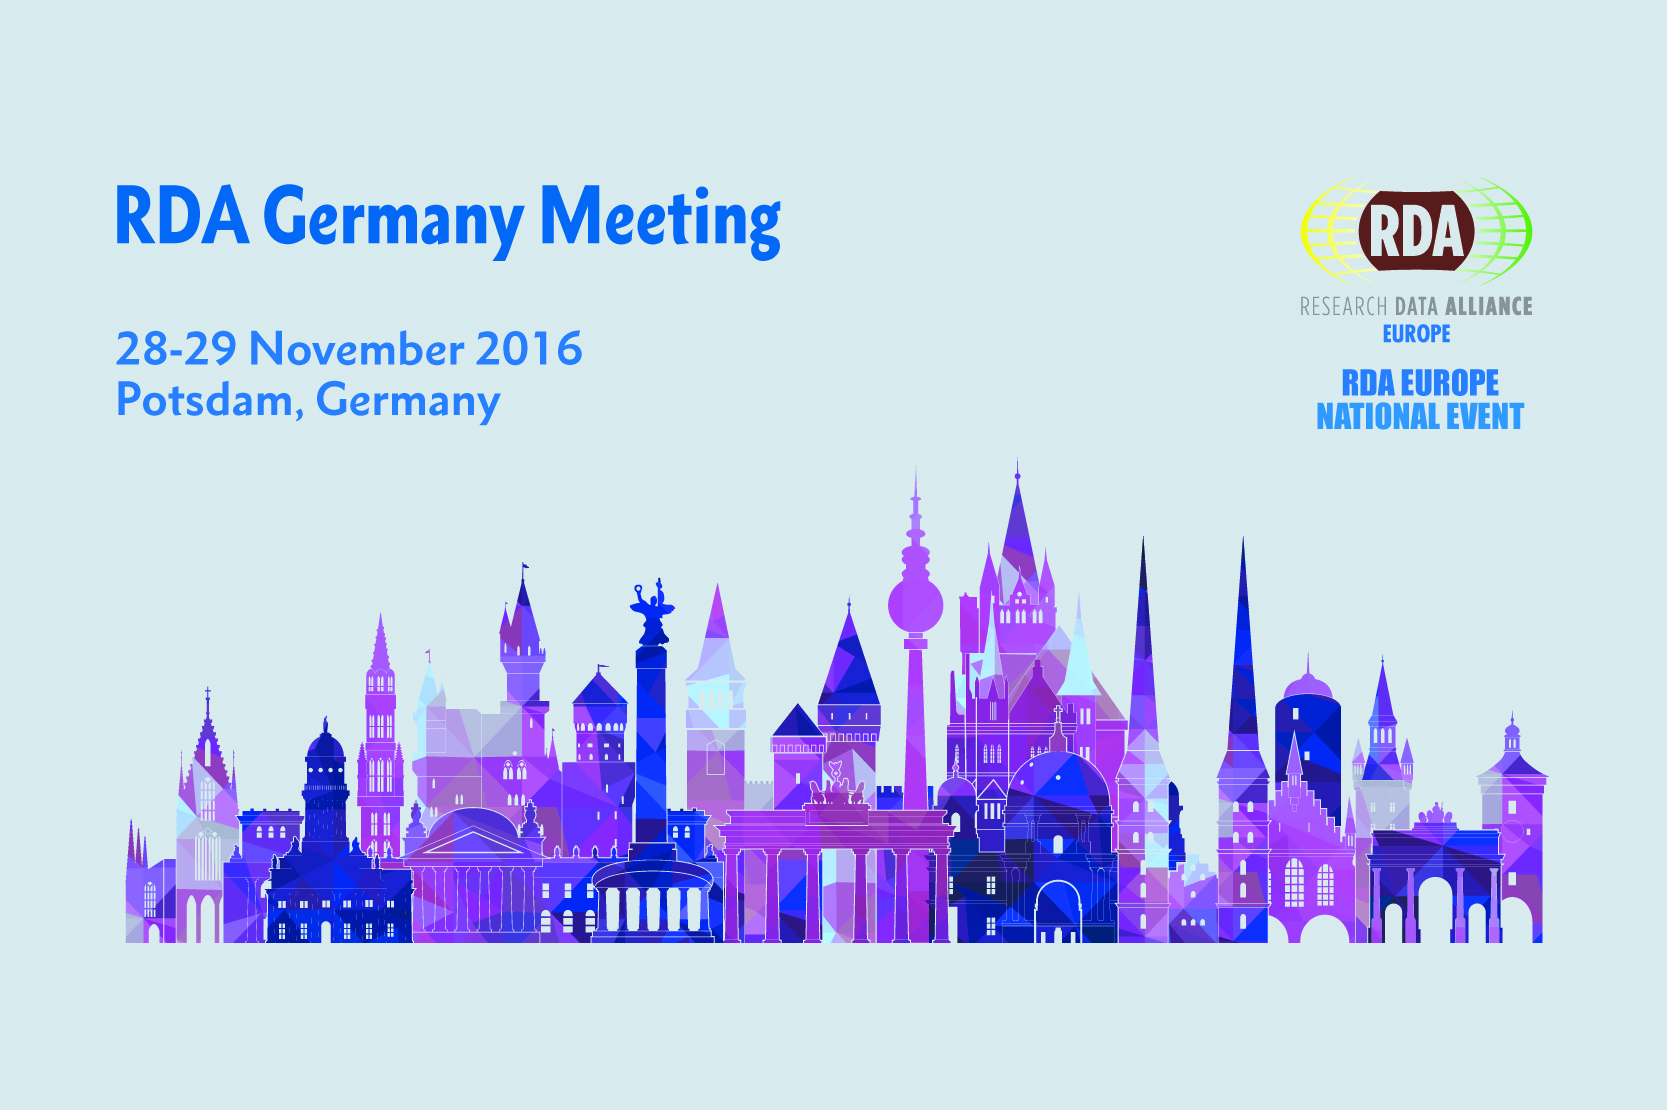 RDA Germany Meeting 2016, 28-29 November 2016, Potsdam, Germany